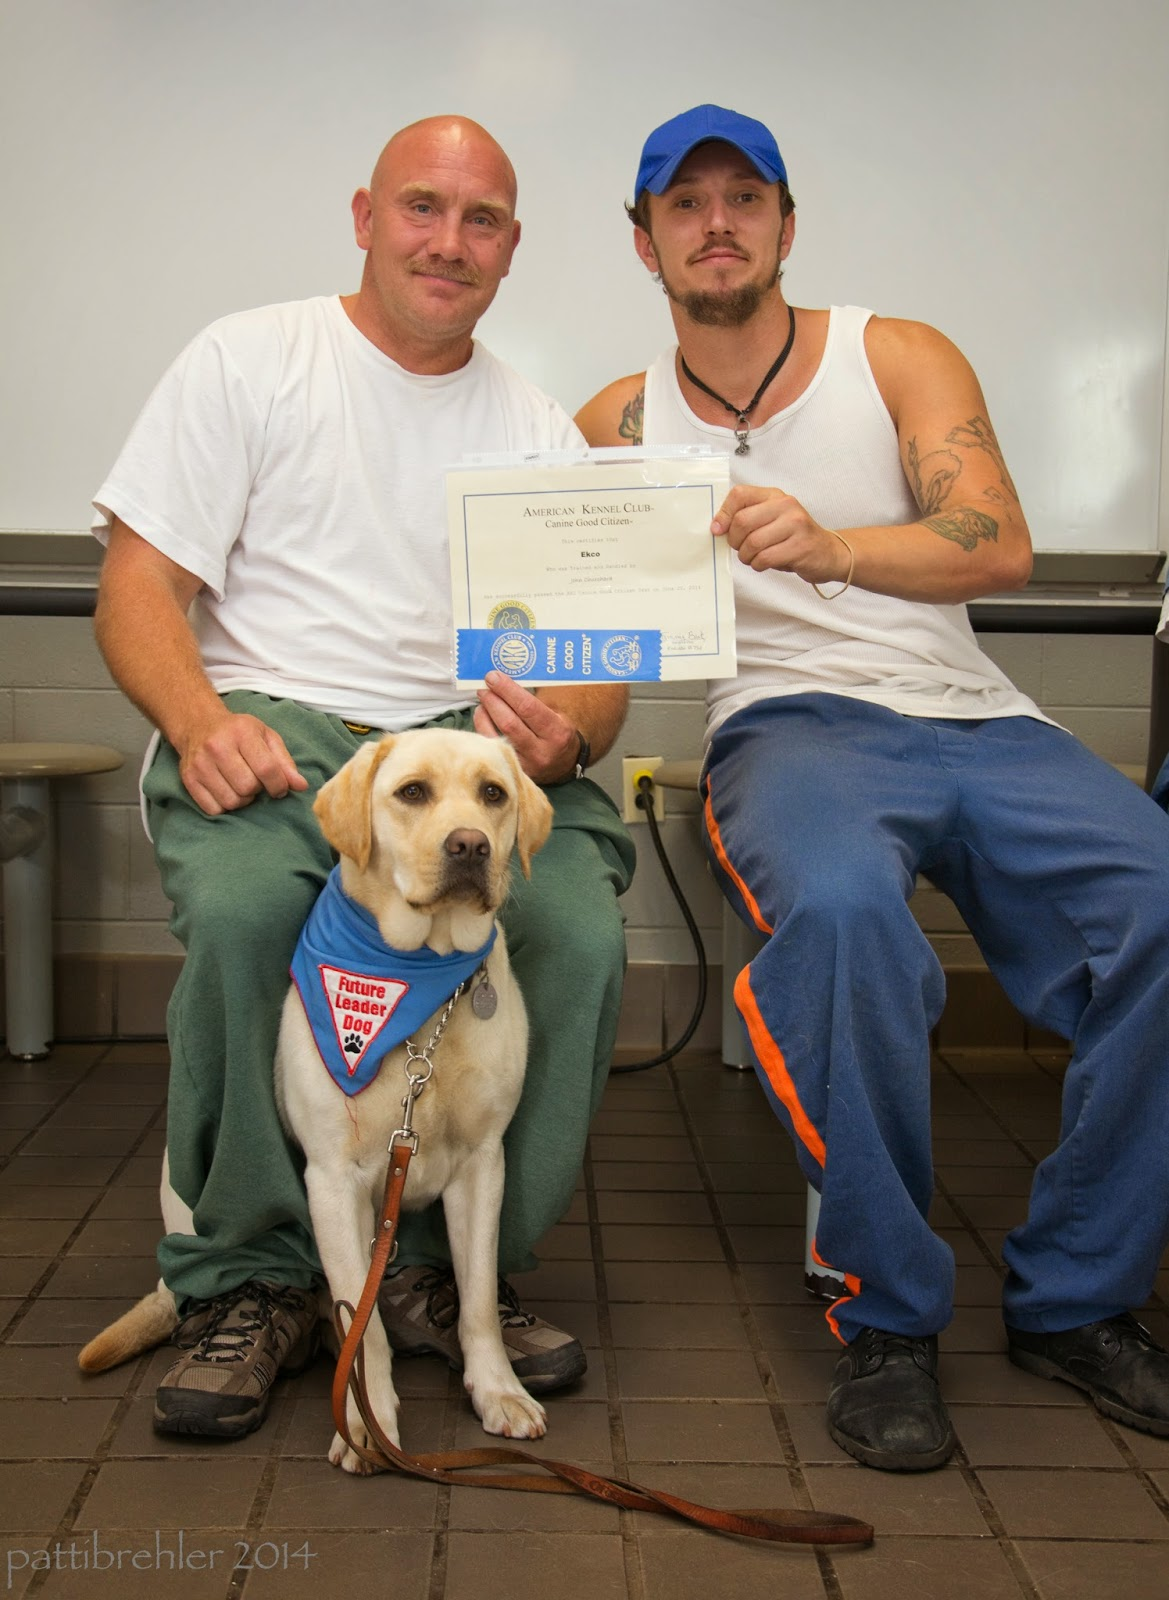 Two men are sitting down behind a yellow lab, who is sitting on the tile floor in front of the man on the left. The man on the left is wearing green pants and a white t-shirt. The man on the right is wearing blue prison pants and a white tank shirt and a blue baseball cap. The men are holding up a certificate between them.